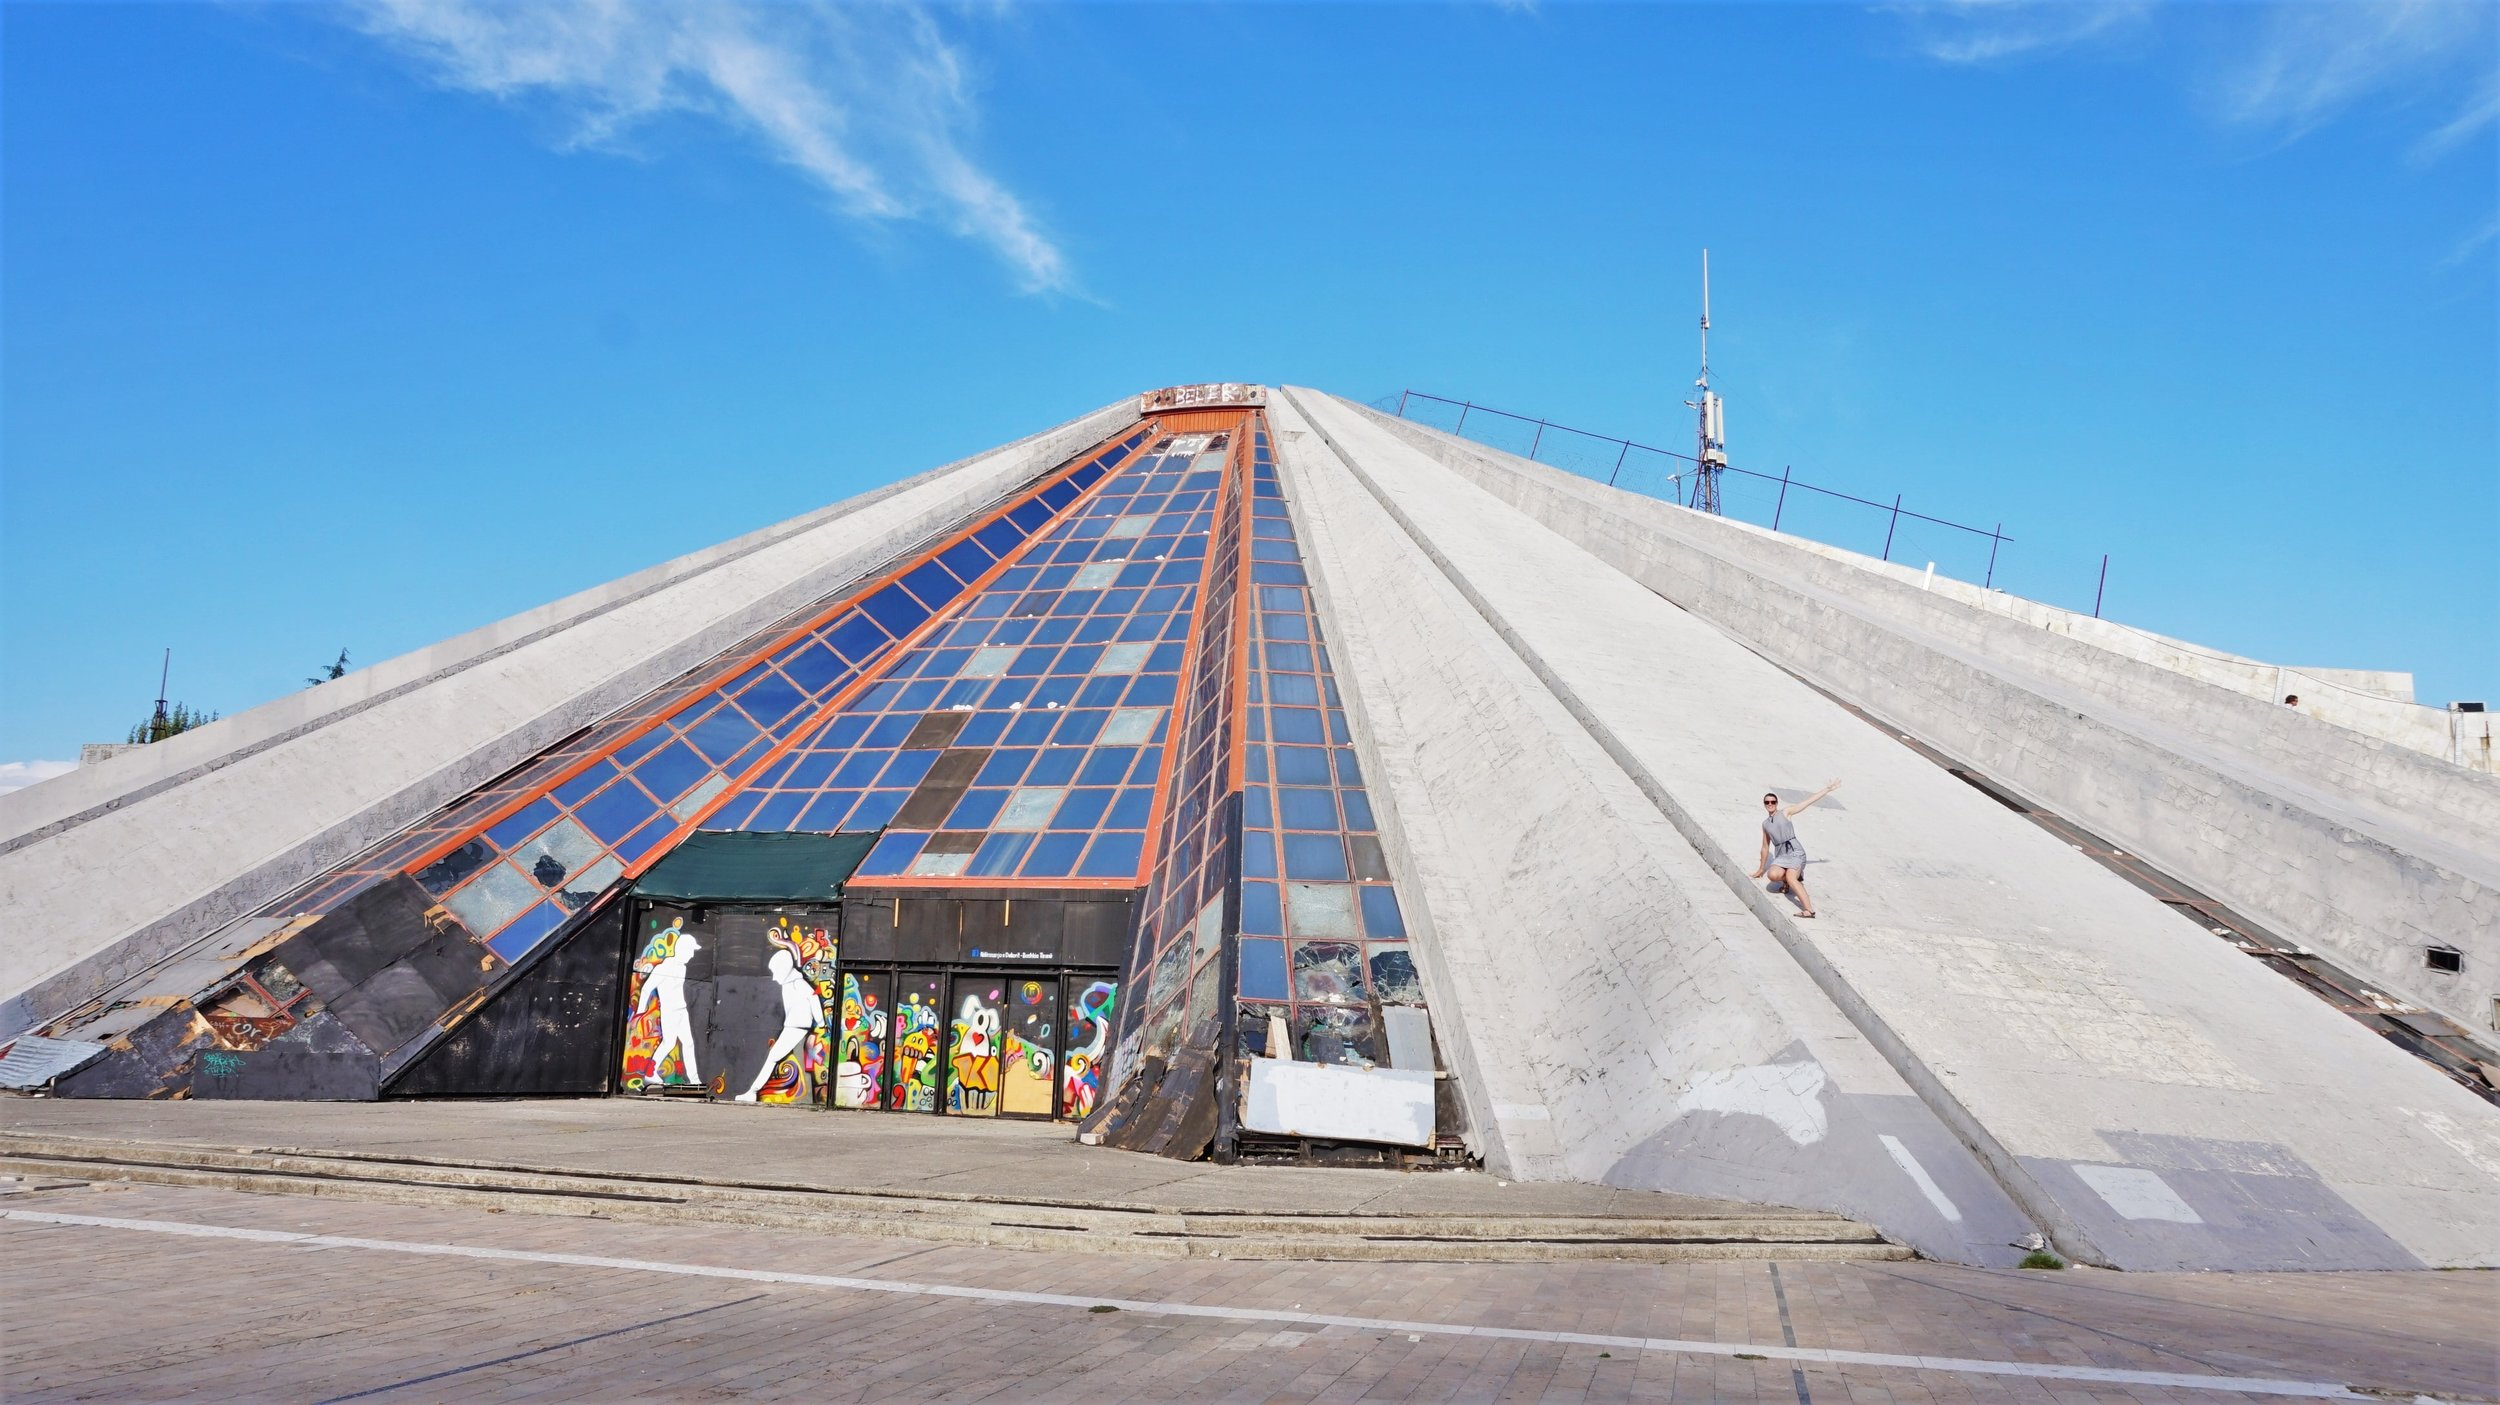 Visiting the abandoned Pyramid in the city centre is one of the best things to do in Tirana, Albania!